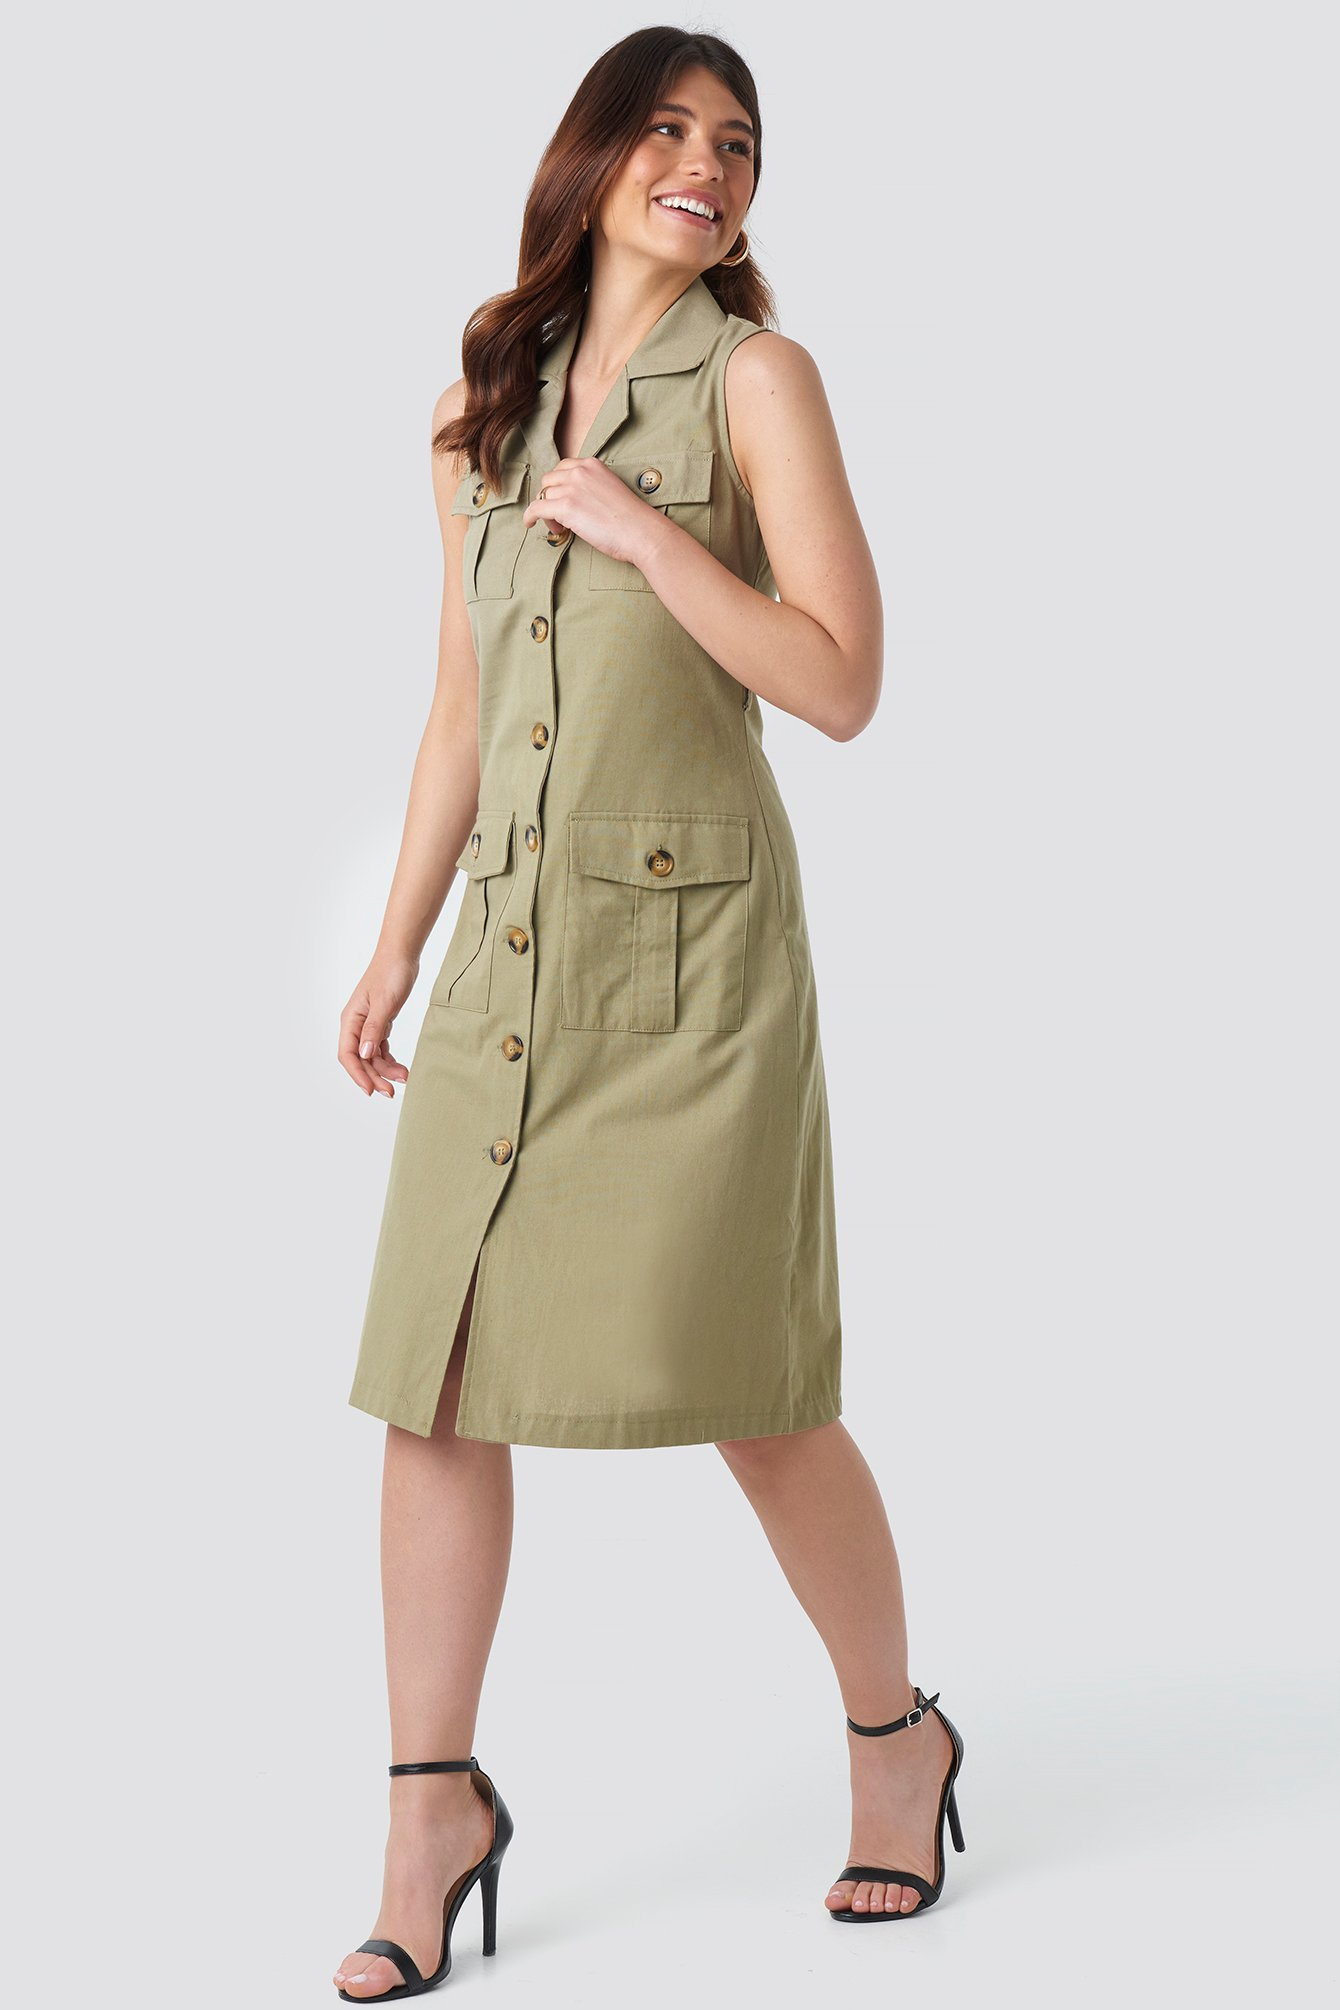 Trendyol Buttoned Linen Dress - Green